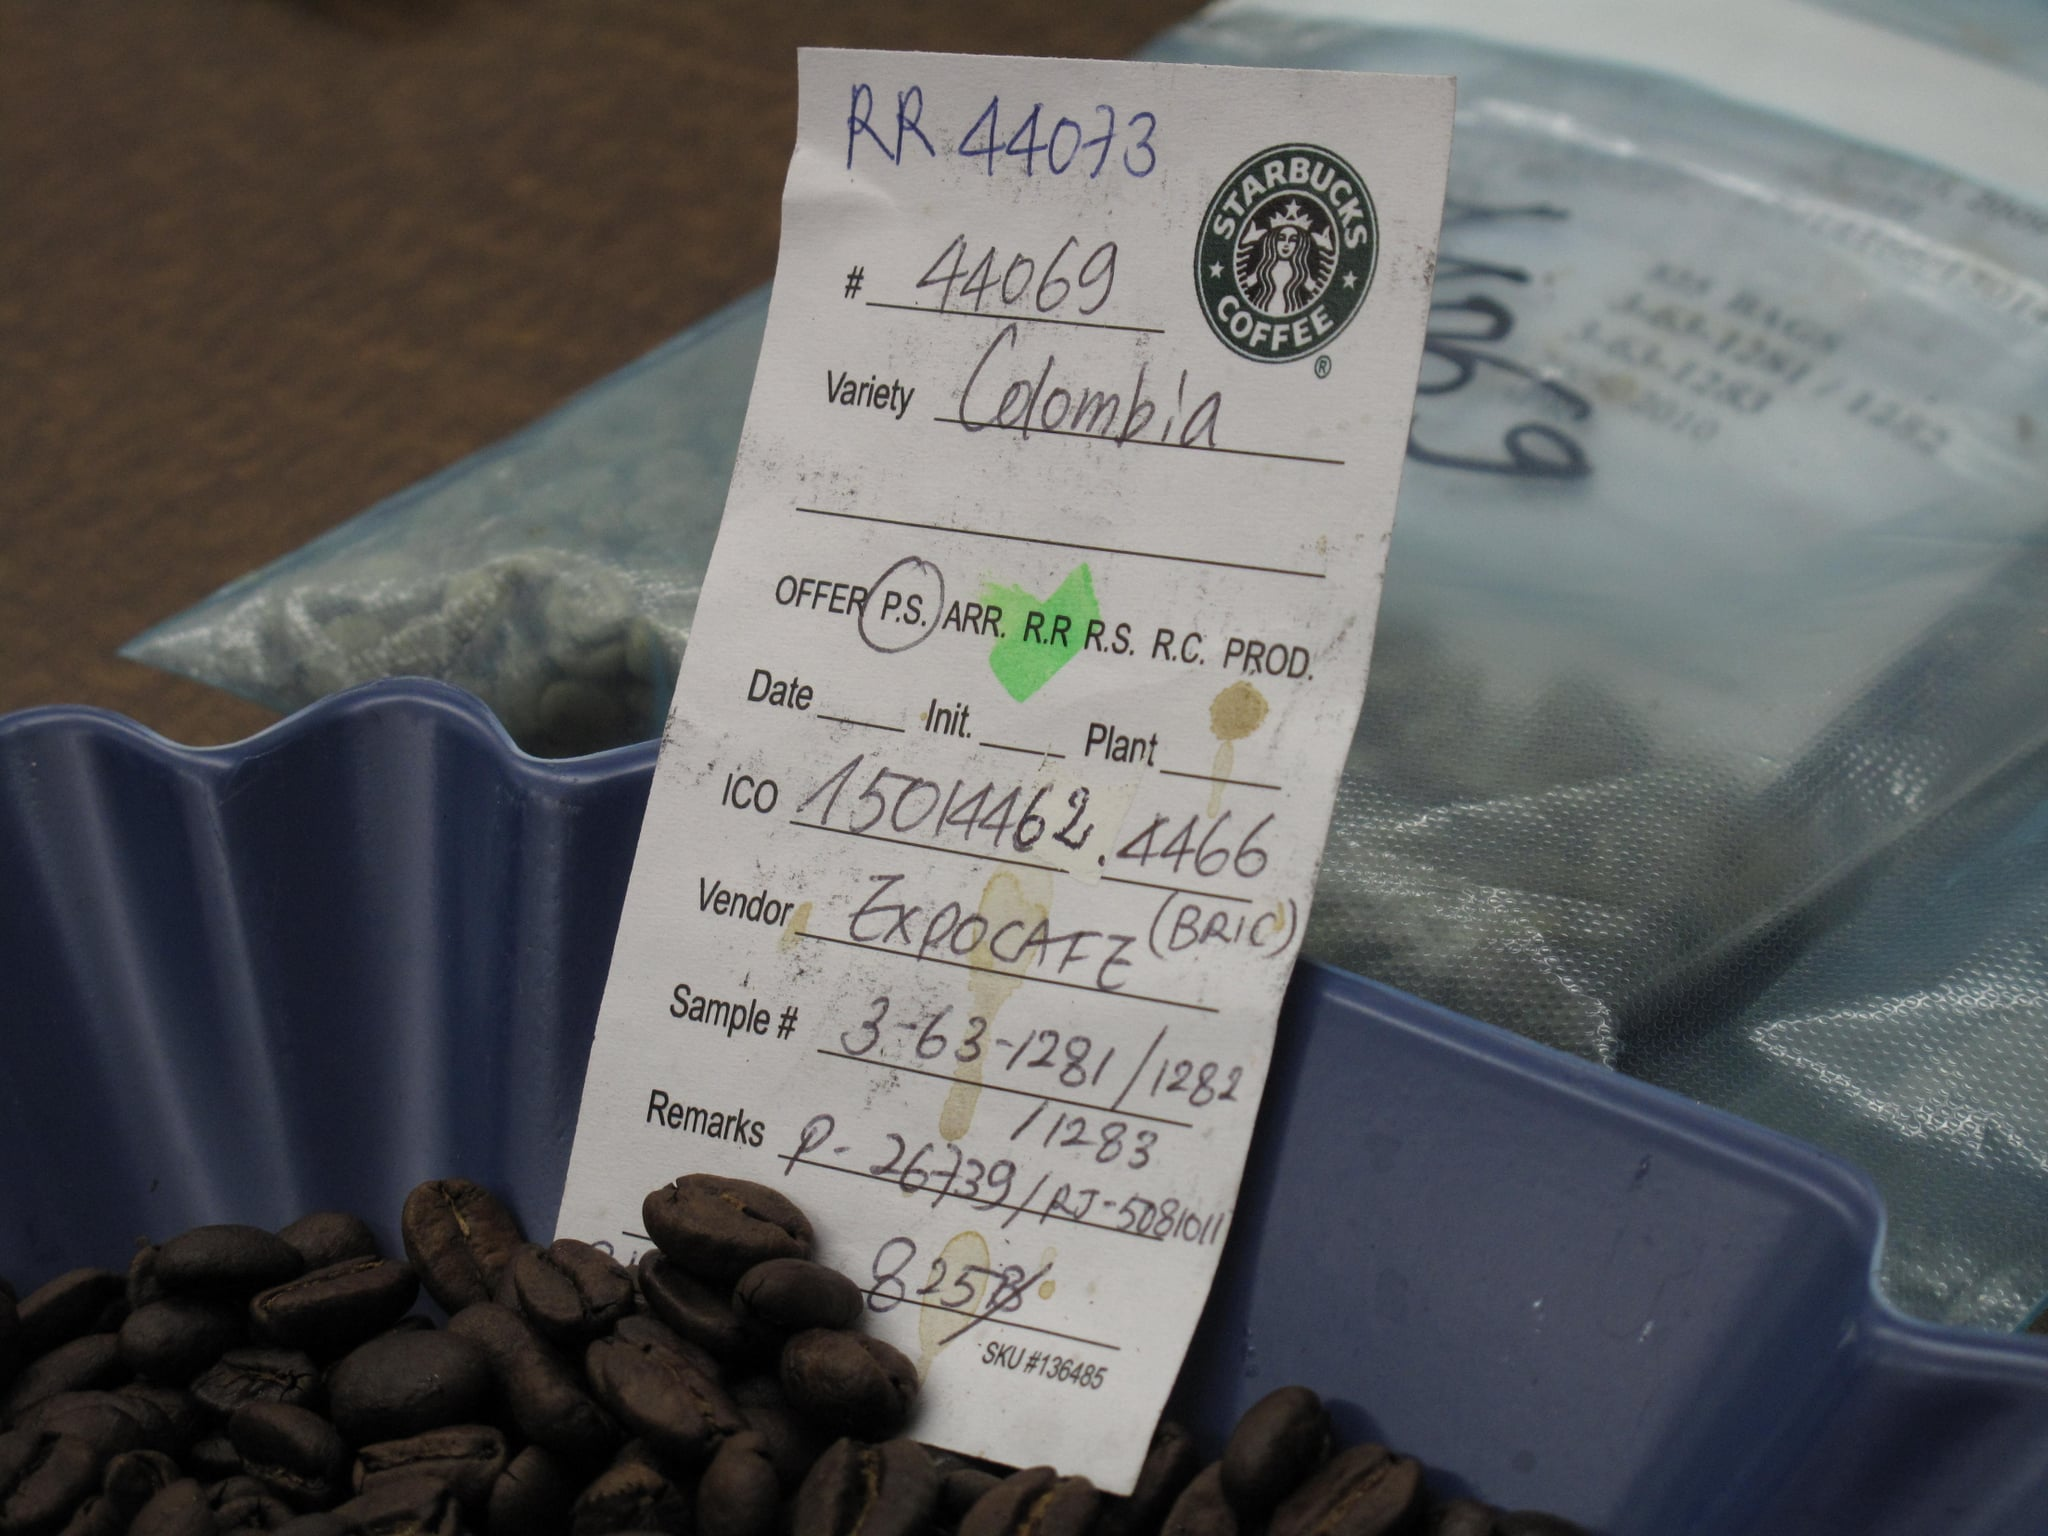 Fifteen people comprise the Starbucks coffee quality team; together, they taste more than 250,000 cups of coffee a year. Yes, 250,000. The label pictured here is typical at a cupping, and denotes crucial information about each batch, including its origin.